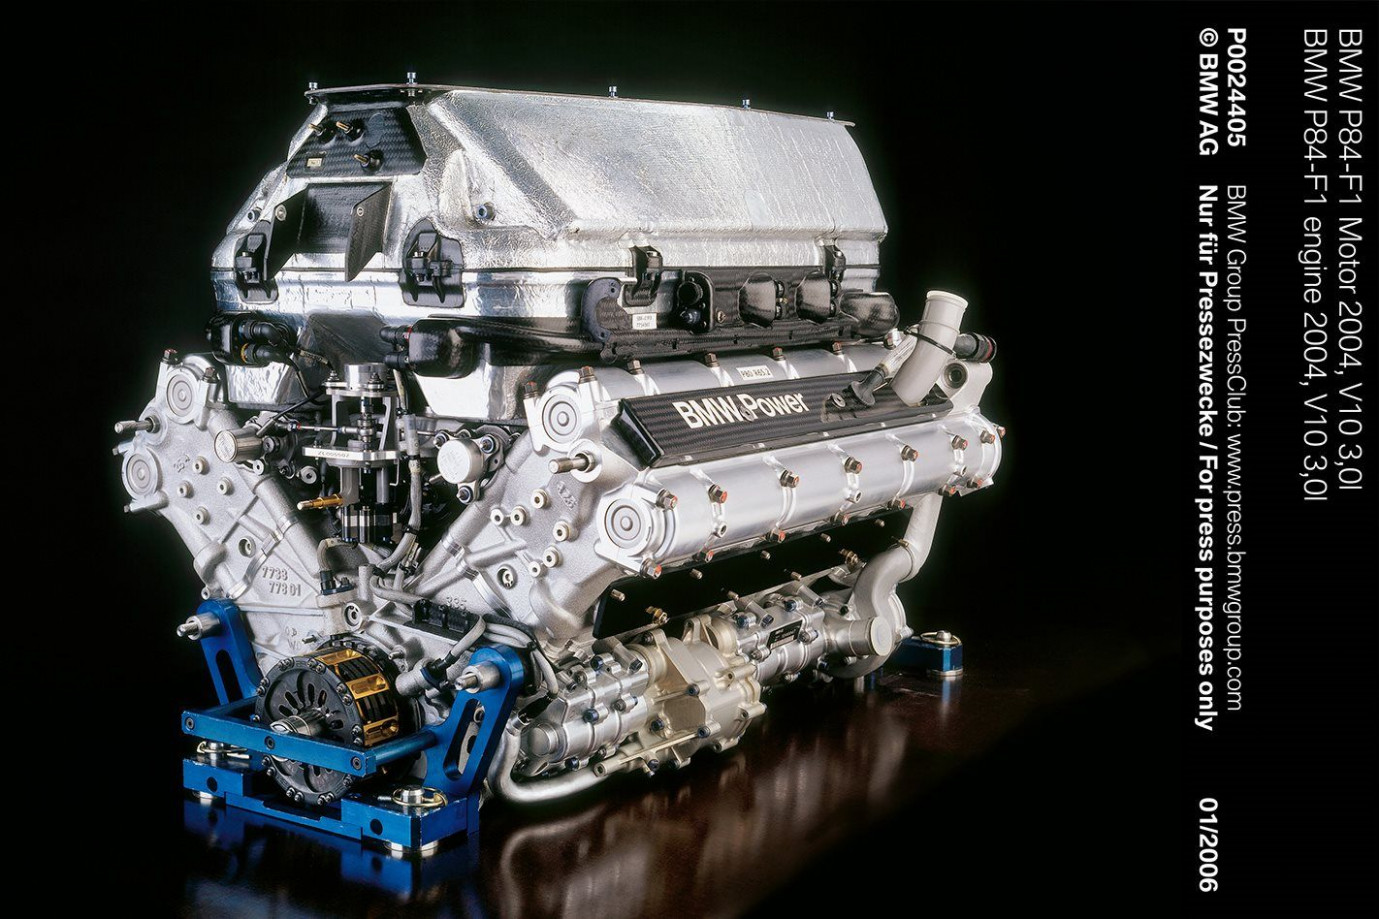 7 ferrari f7 engine First Drive, Price, Performance and Review ...